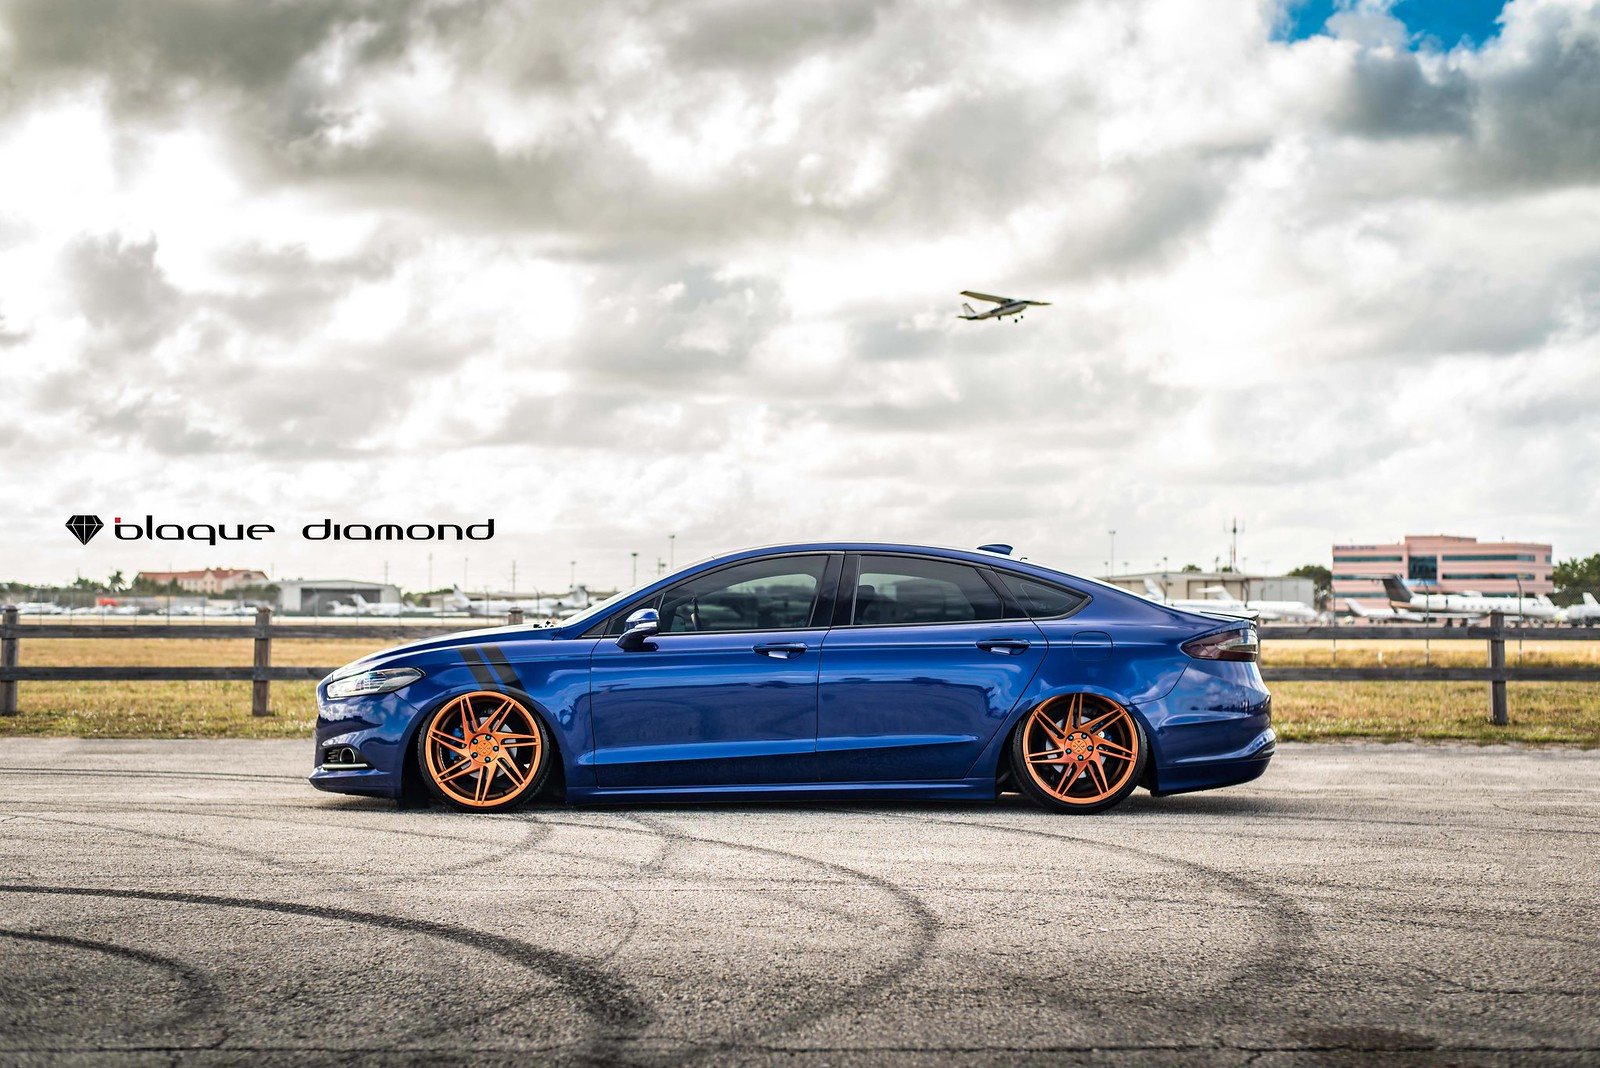 2014_Ford_Fusion_blue_BD1_Trans_Copper_20_Inch-1